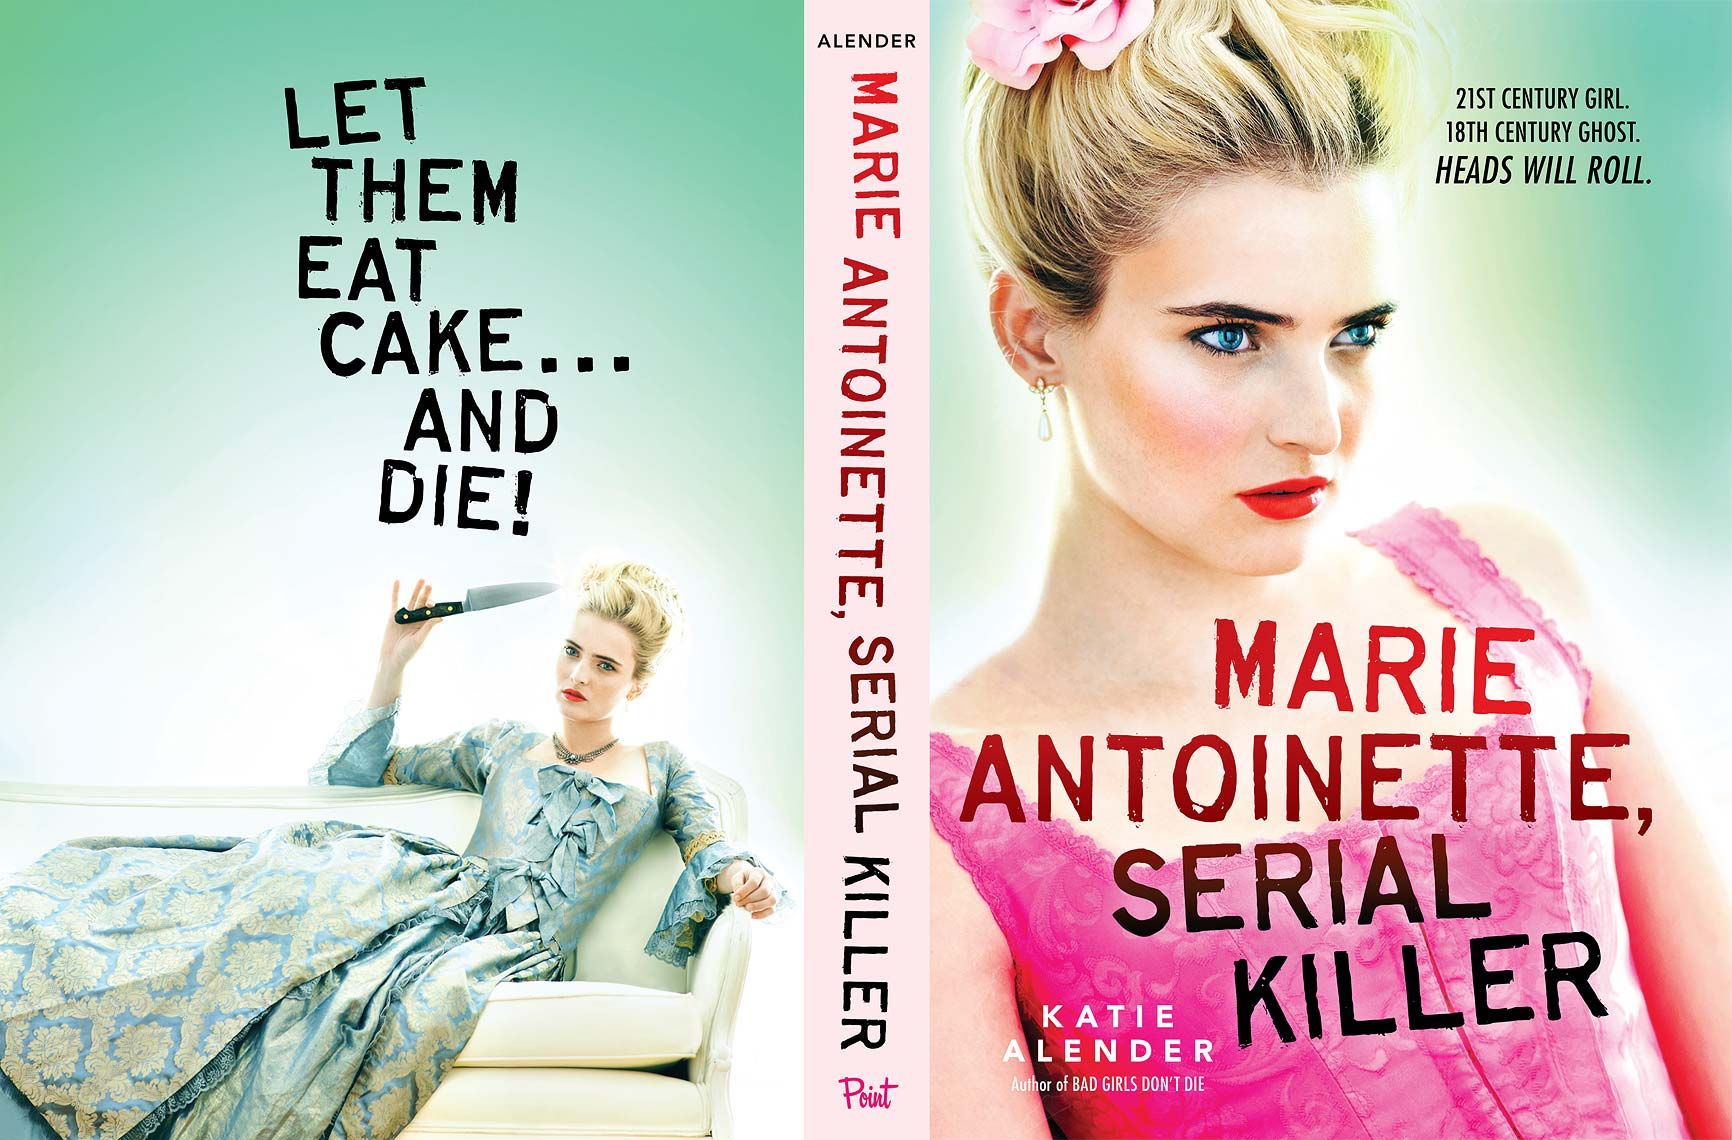 Marie Antoinette, Serial Killer - Katie Alender | Michael Frost Photography